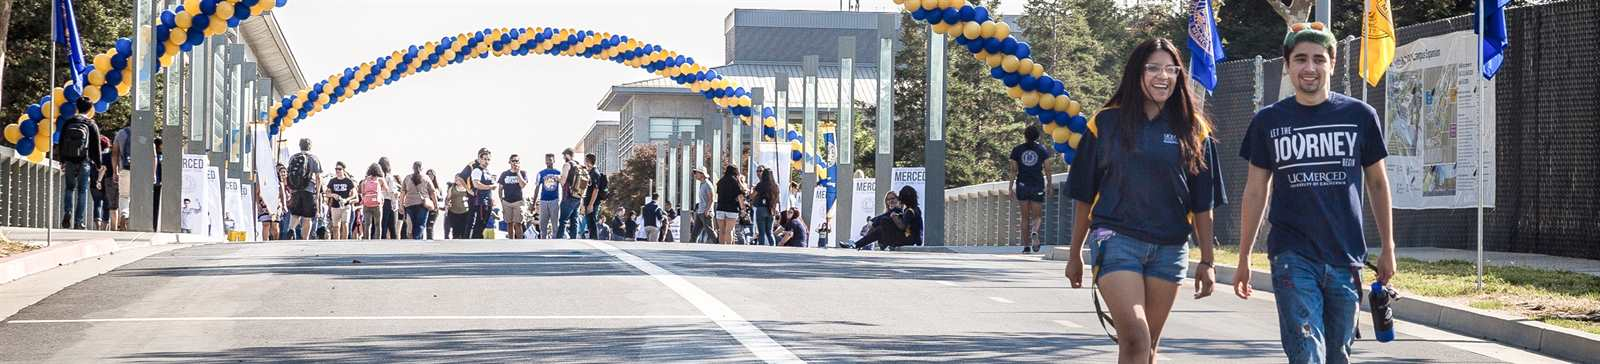 UC Merced Bridge Crossing